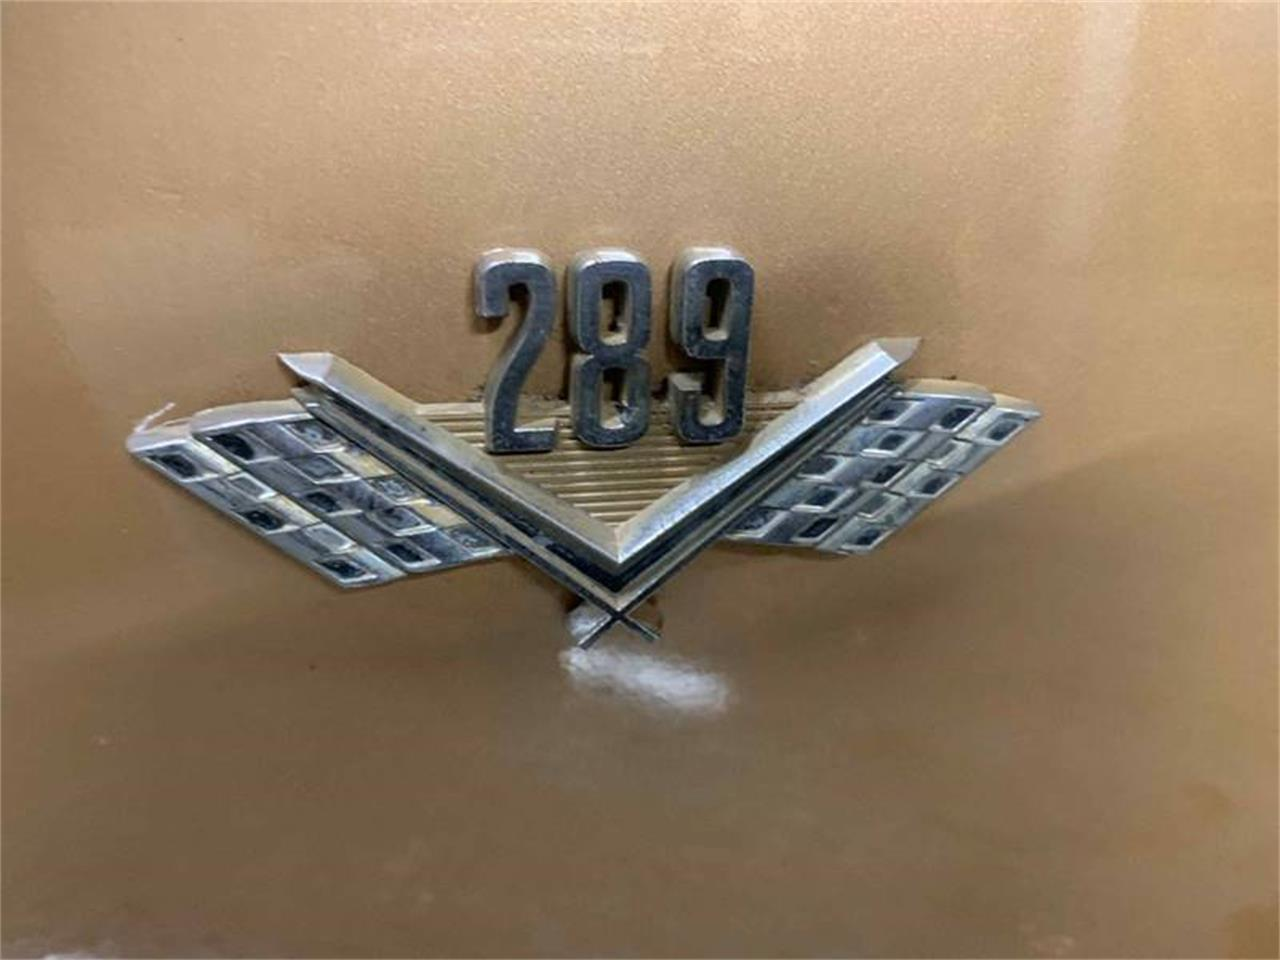 Large Picture of Classic '65 Ford Fairlane 500 located in Redmond Oregon - $11,500.00 - PX48